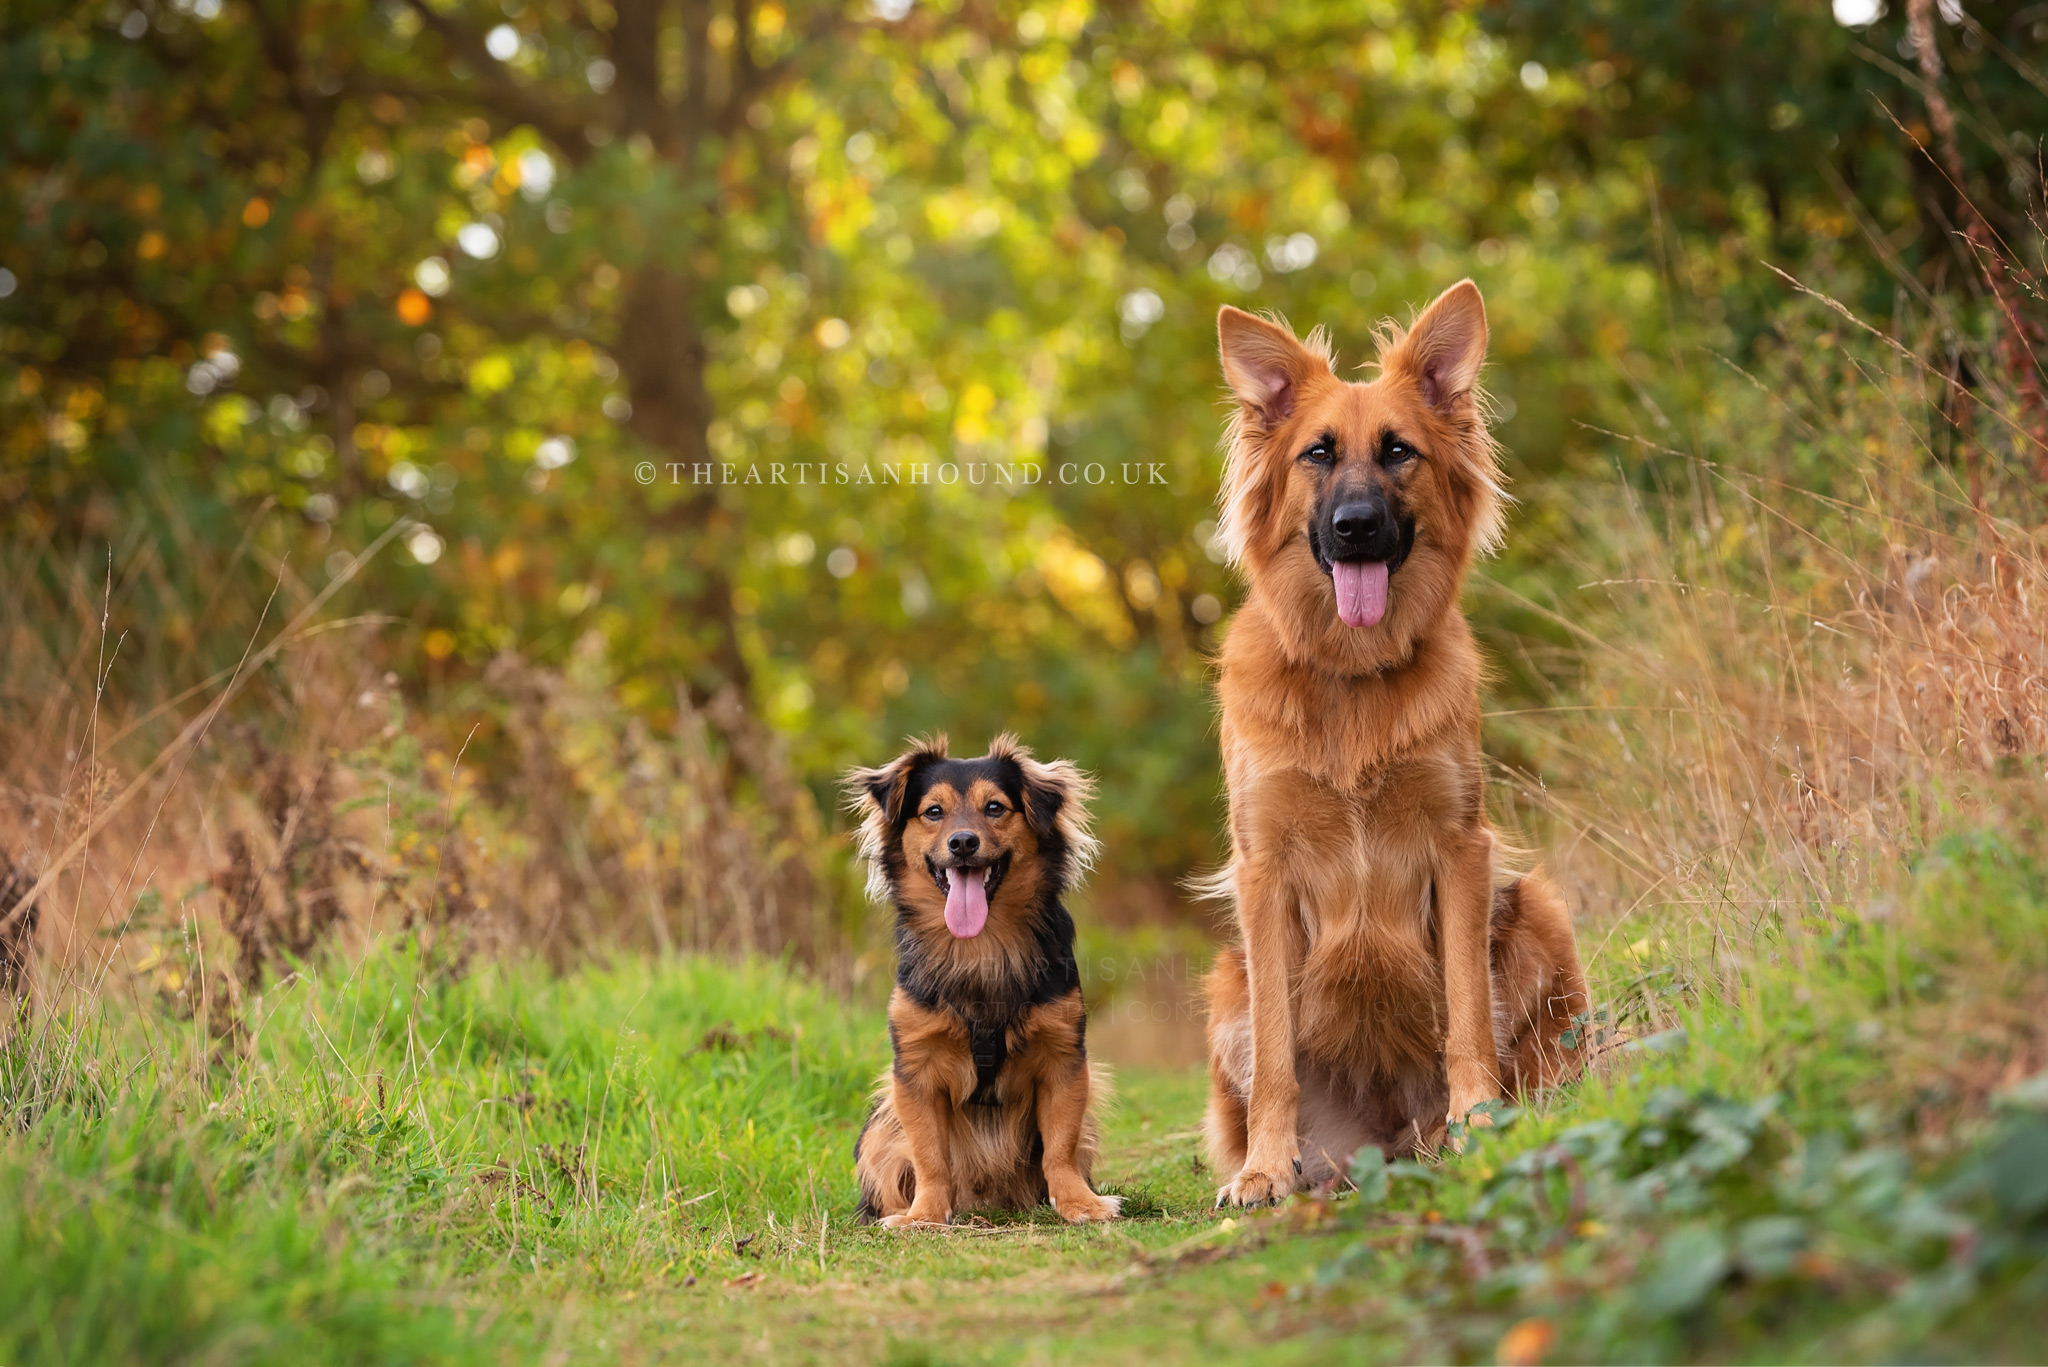 Two dogs sitting side by side in Northants park